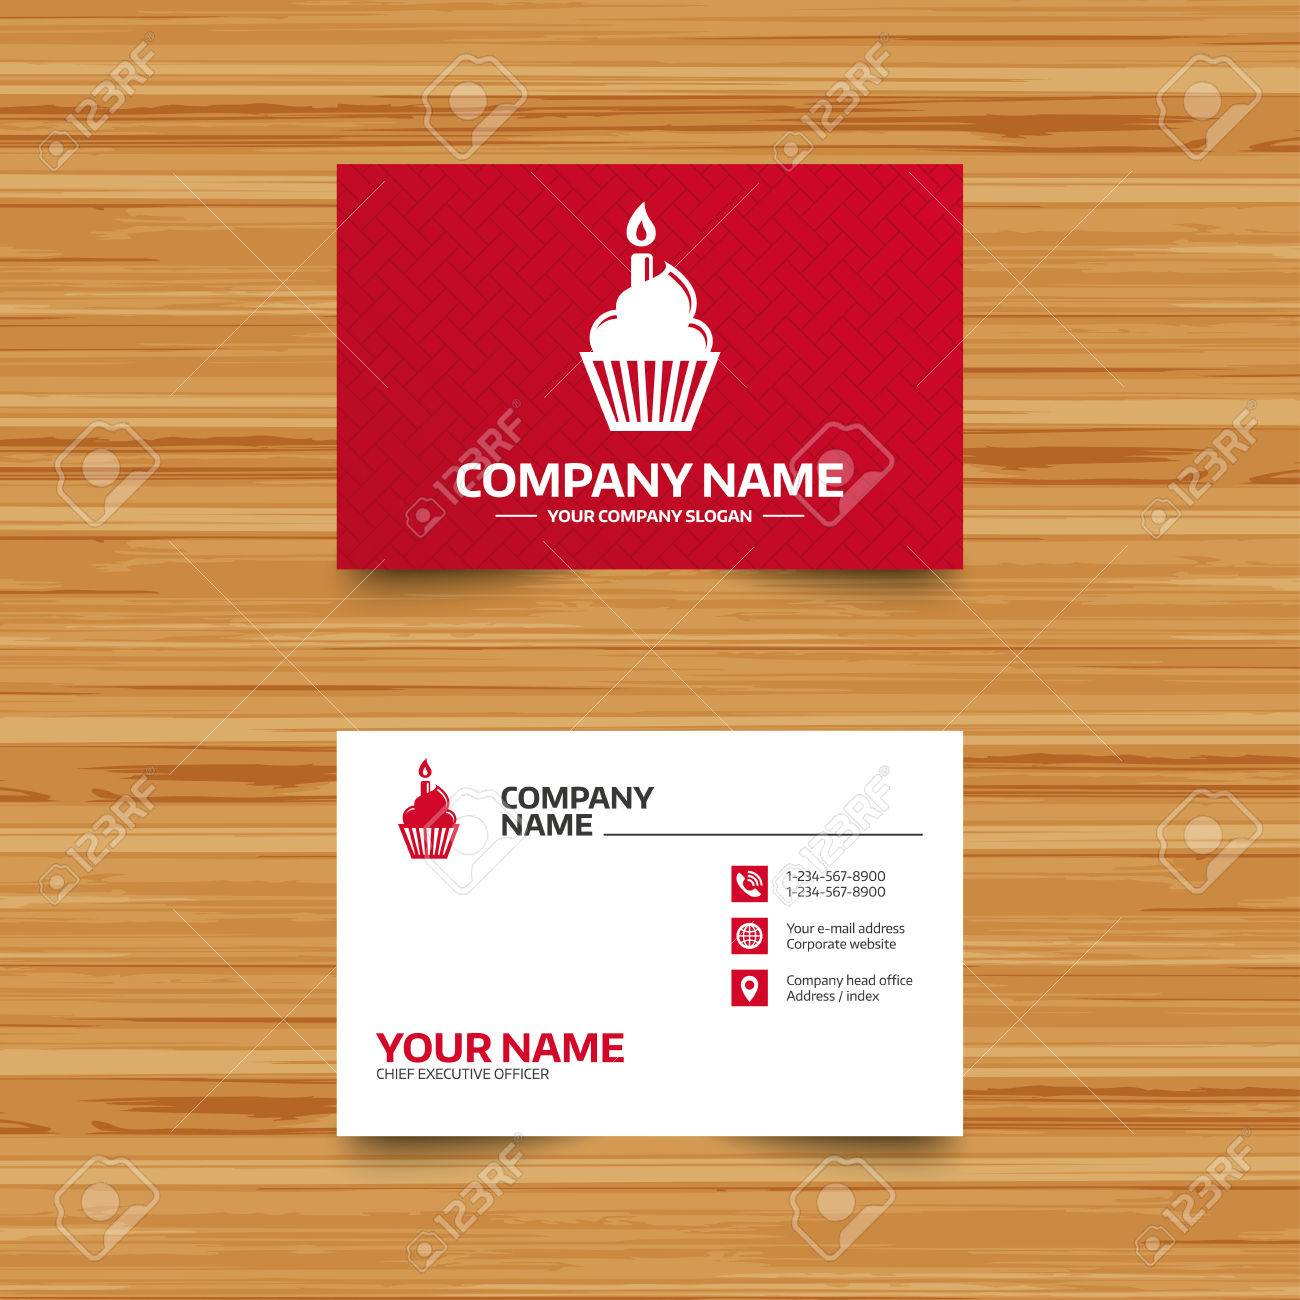 Business card template birthday cake sign icon cupcake with business card template birthday cake sign icon cupcake with burning candle symbol phone reheart Images